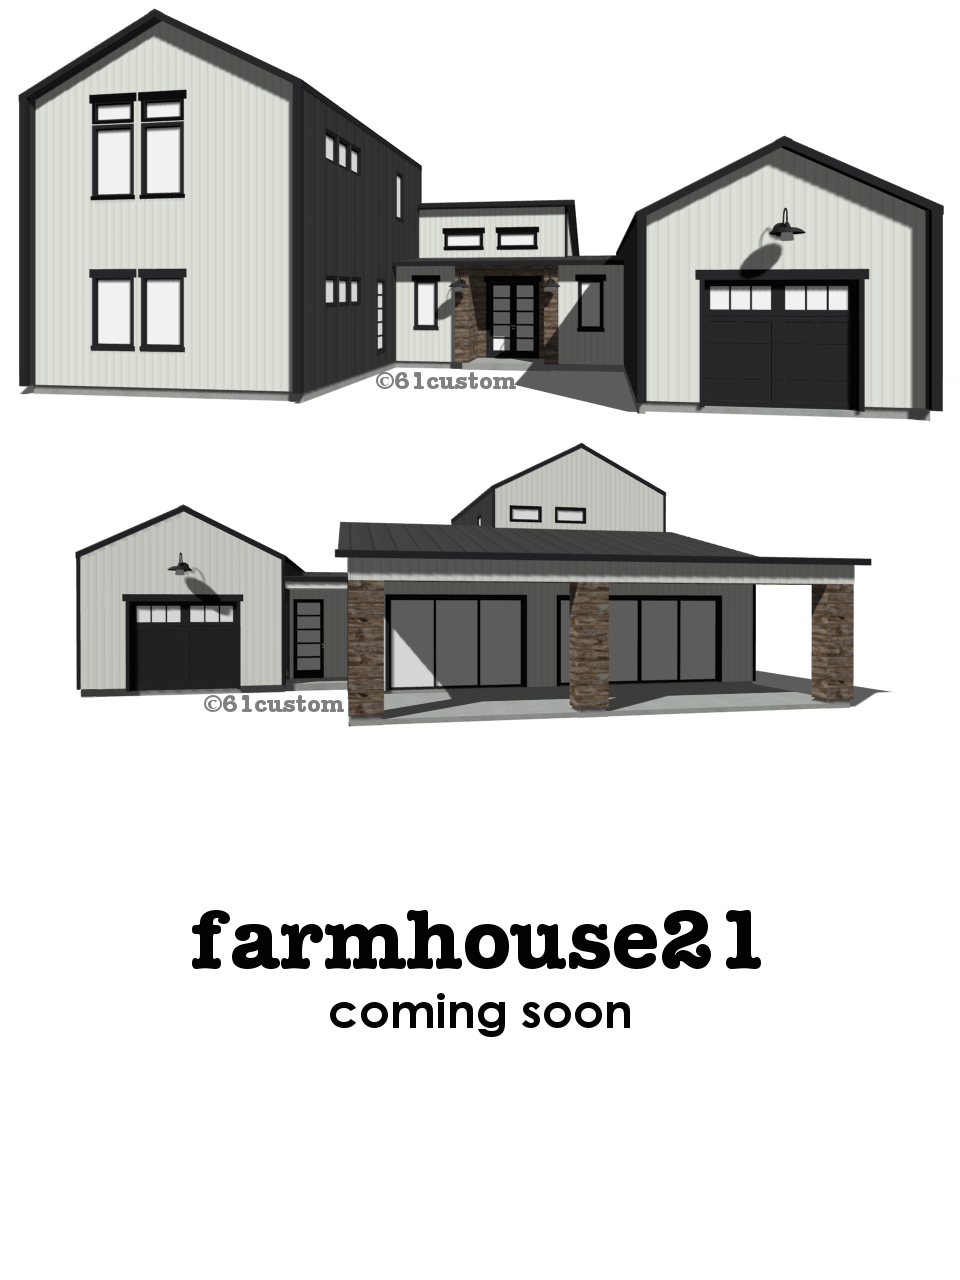 farmhouse21 modern farmhouse plan 61custom